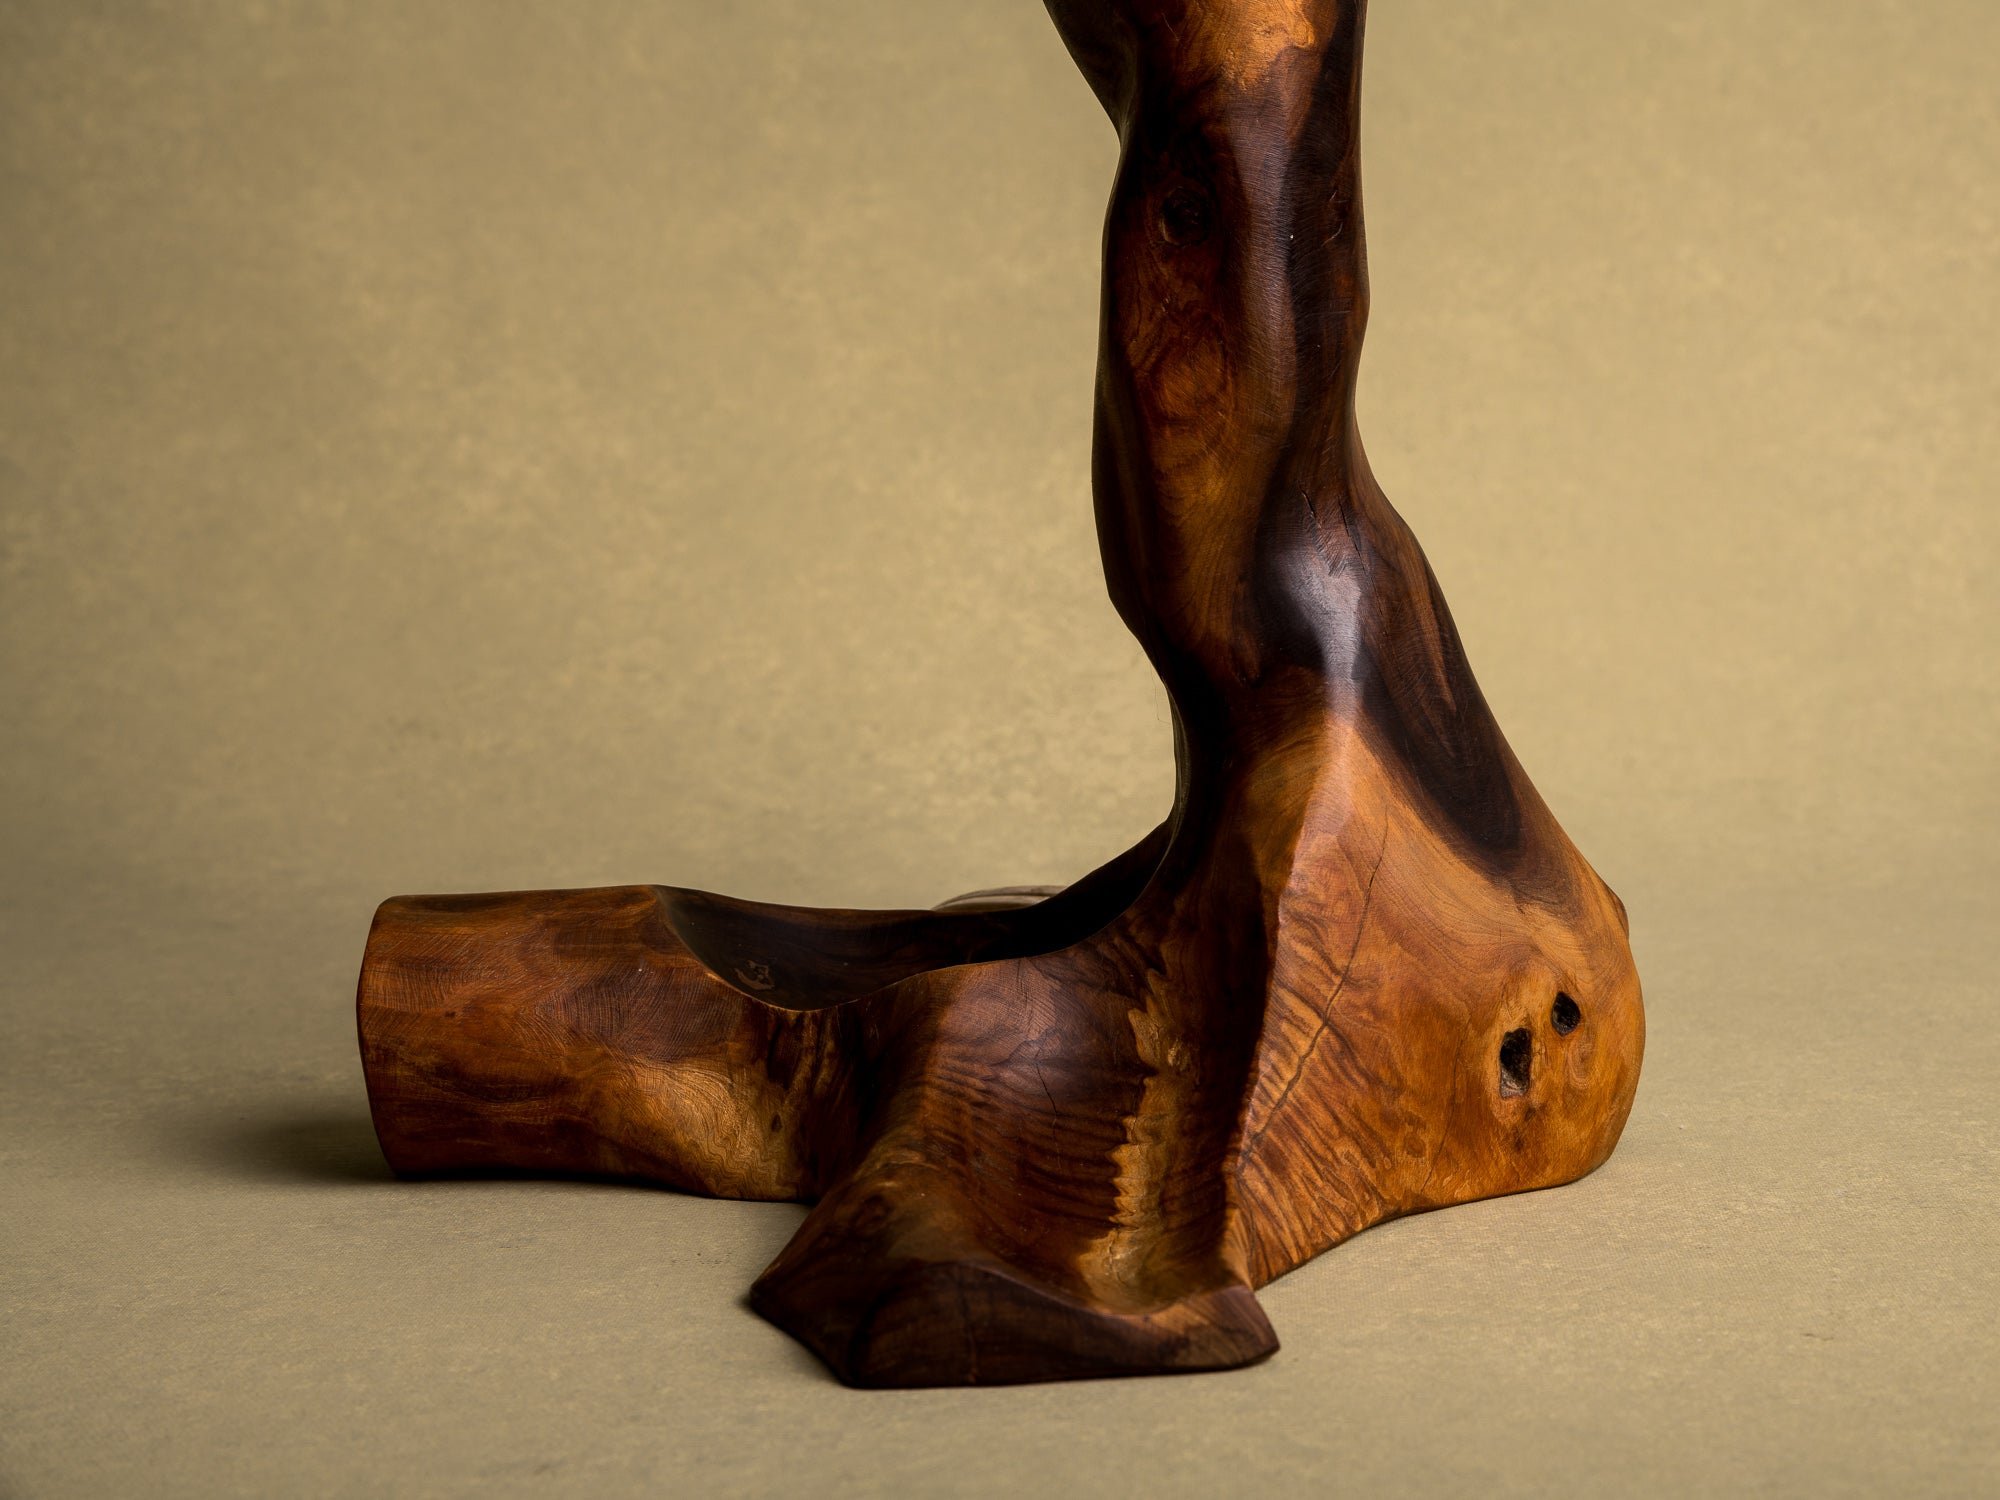 Lampe de table organique en olivier, France (vers 1950)..Free form biomorphic wood lamp, France (circa 1950)